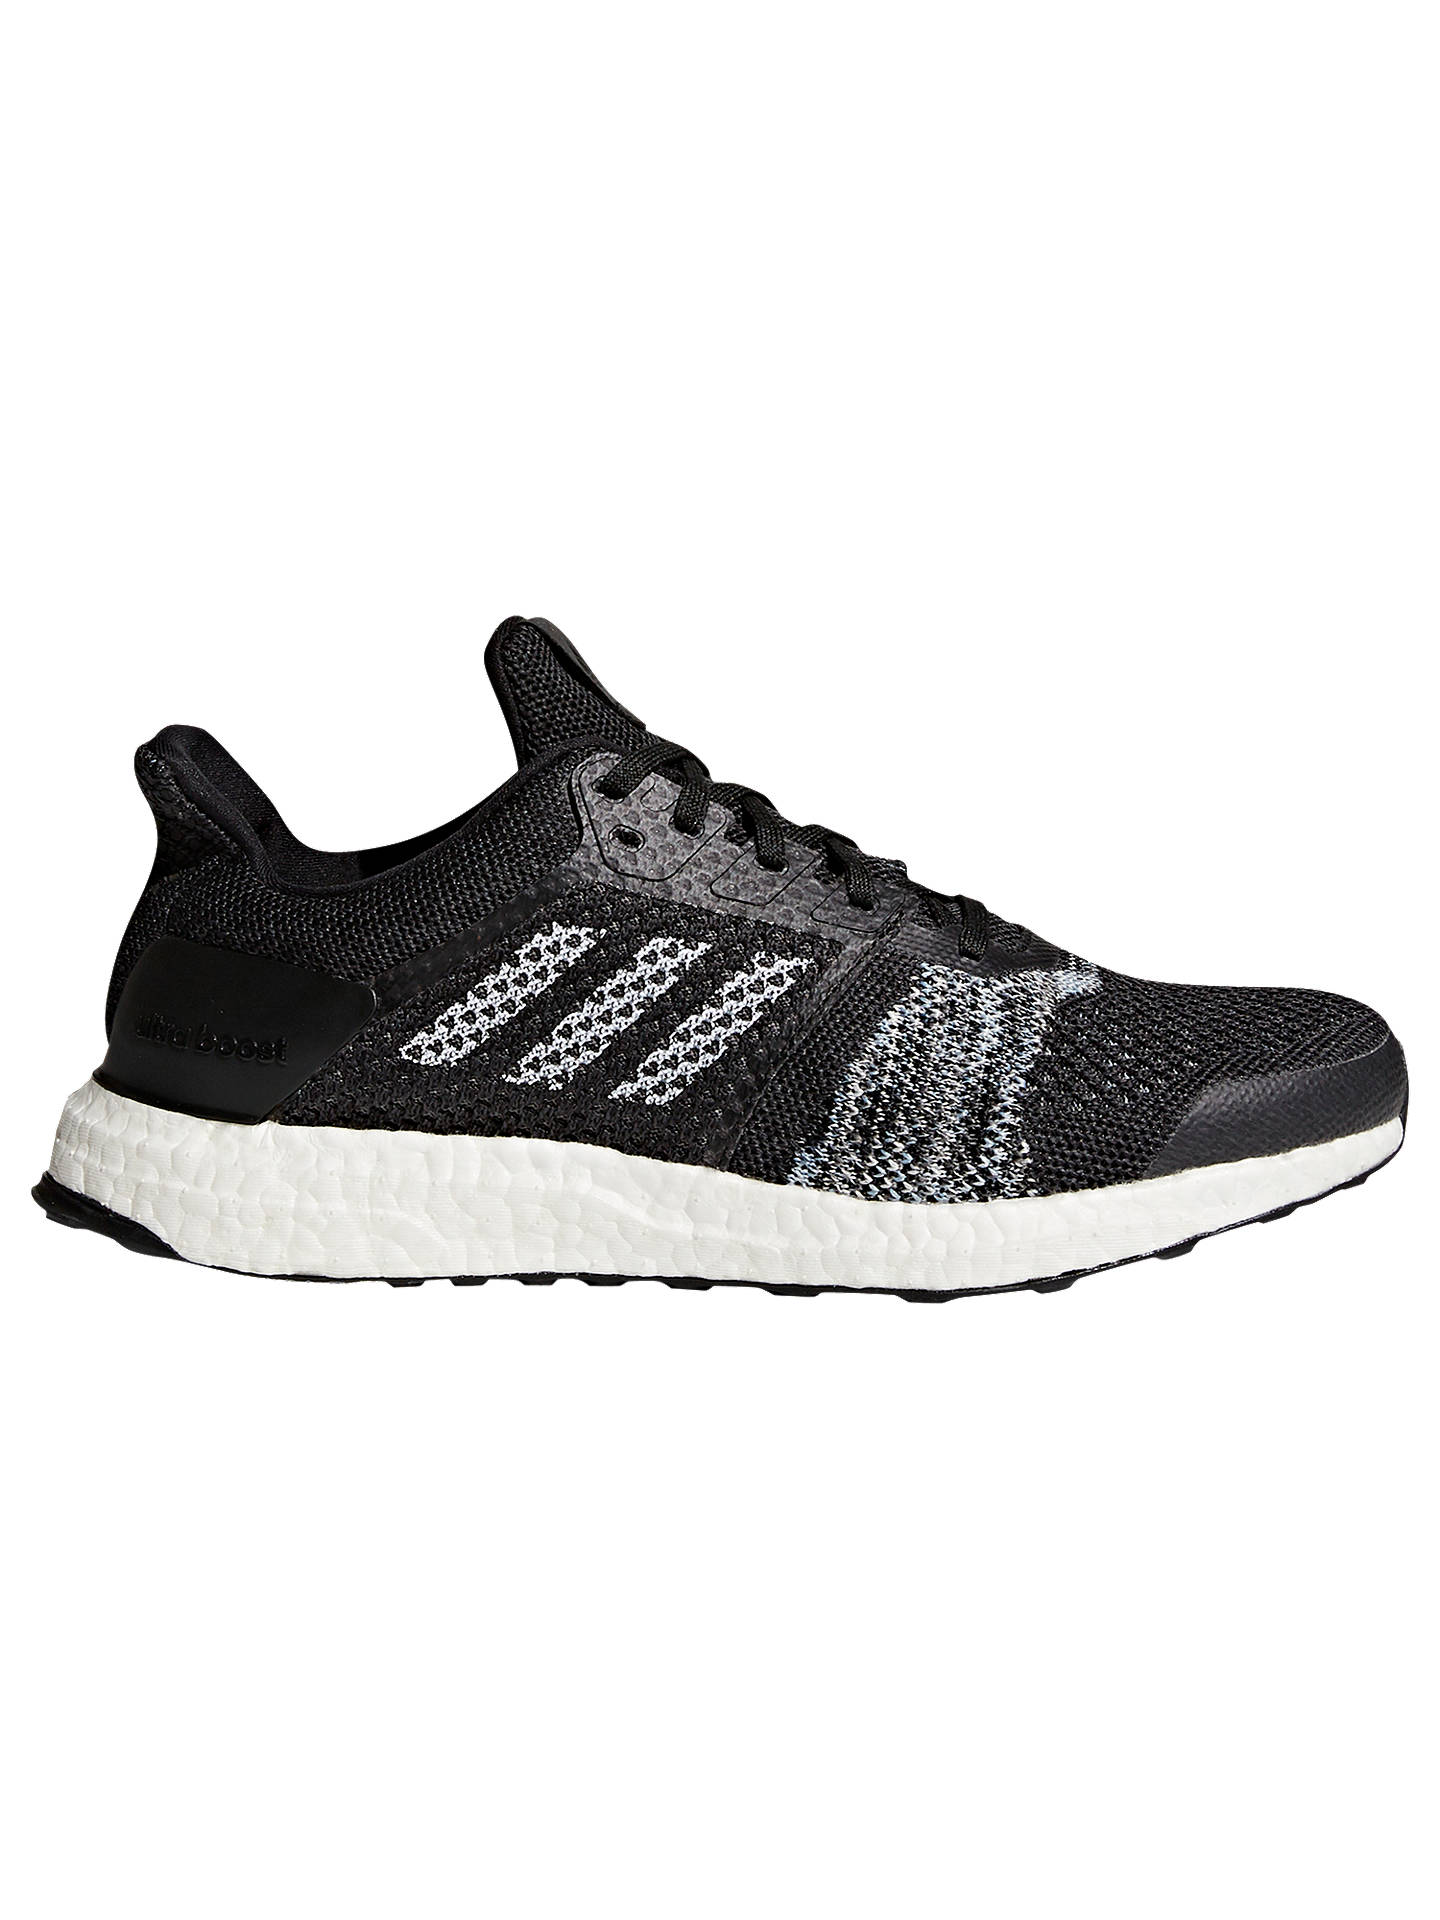 e983f88f455 Buyadidas UltraBOOST ST Men s Running Shoes